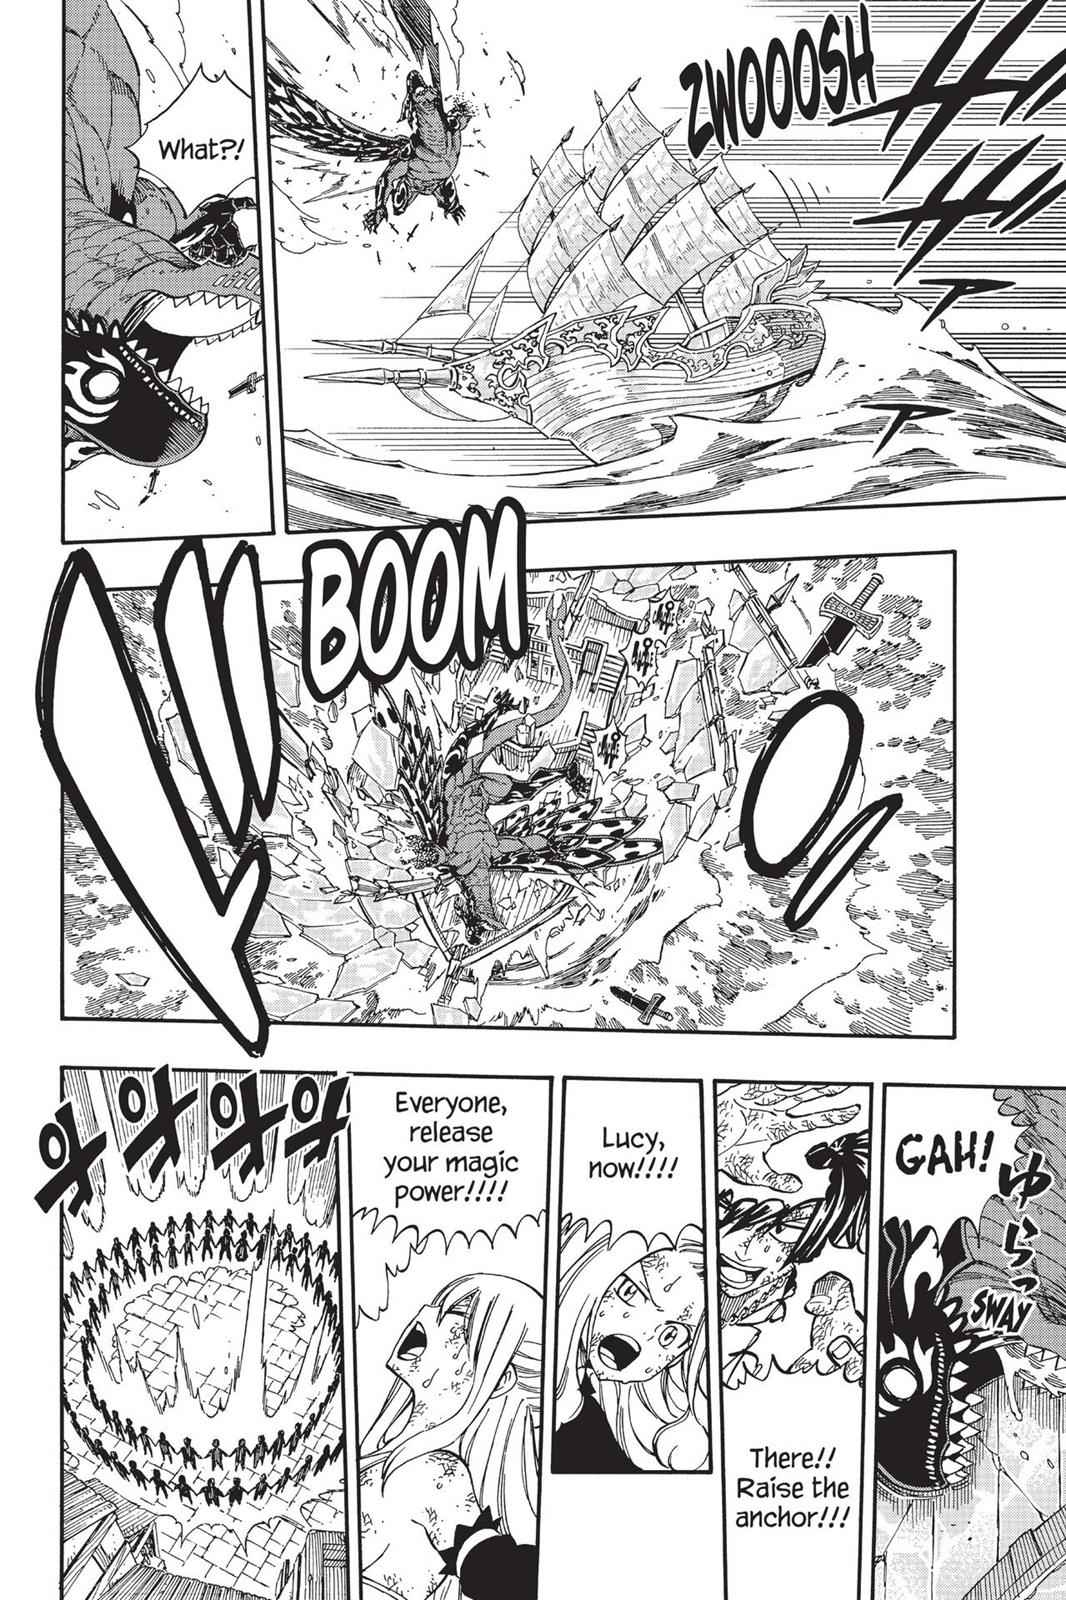 Fairy Tail Chapter 543 Page 18